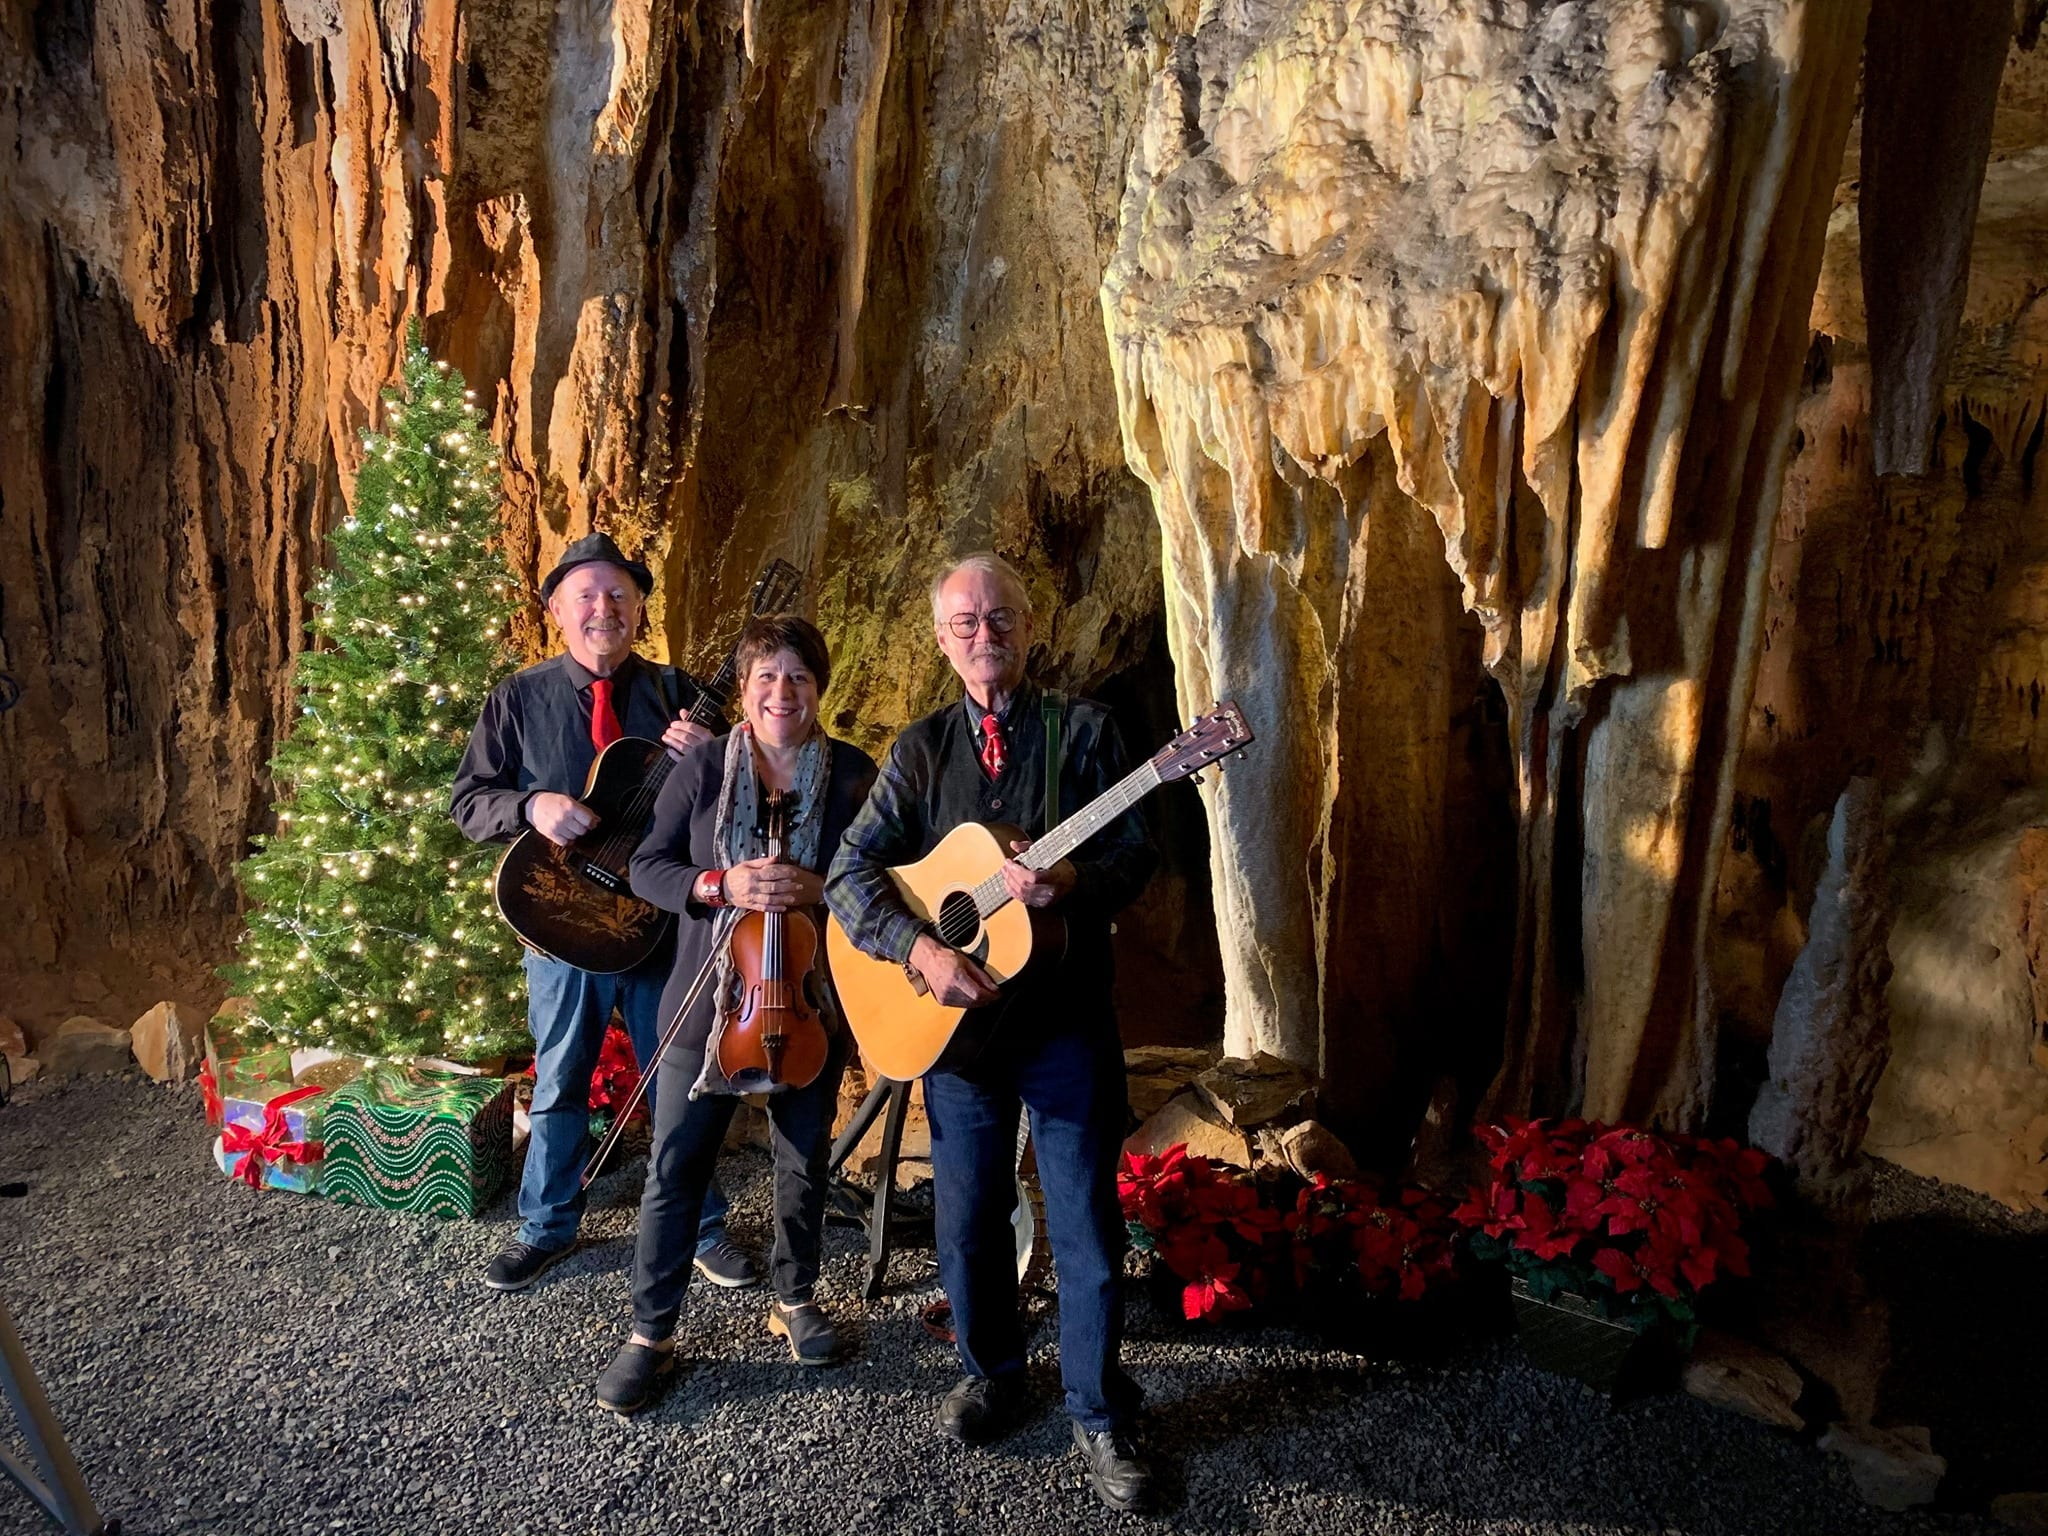 Virtual Caroling in the Caverns